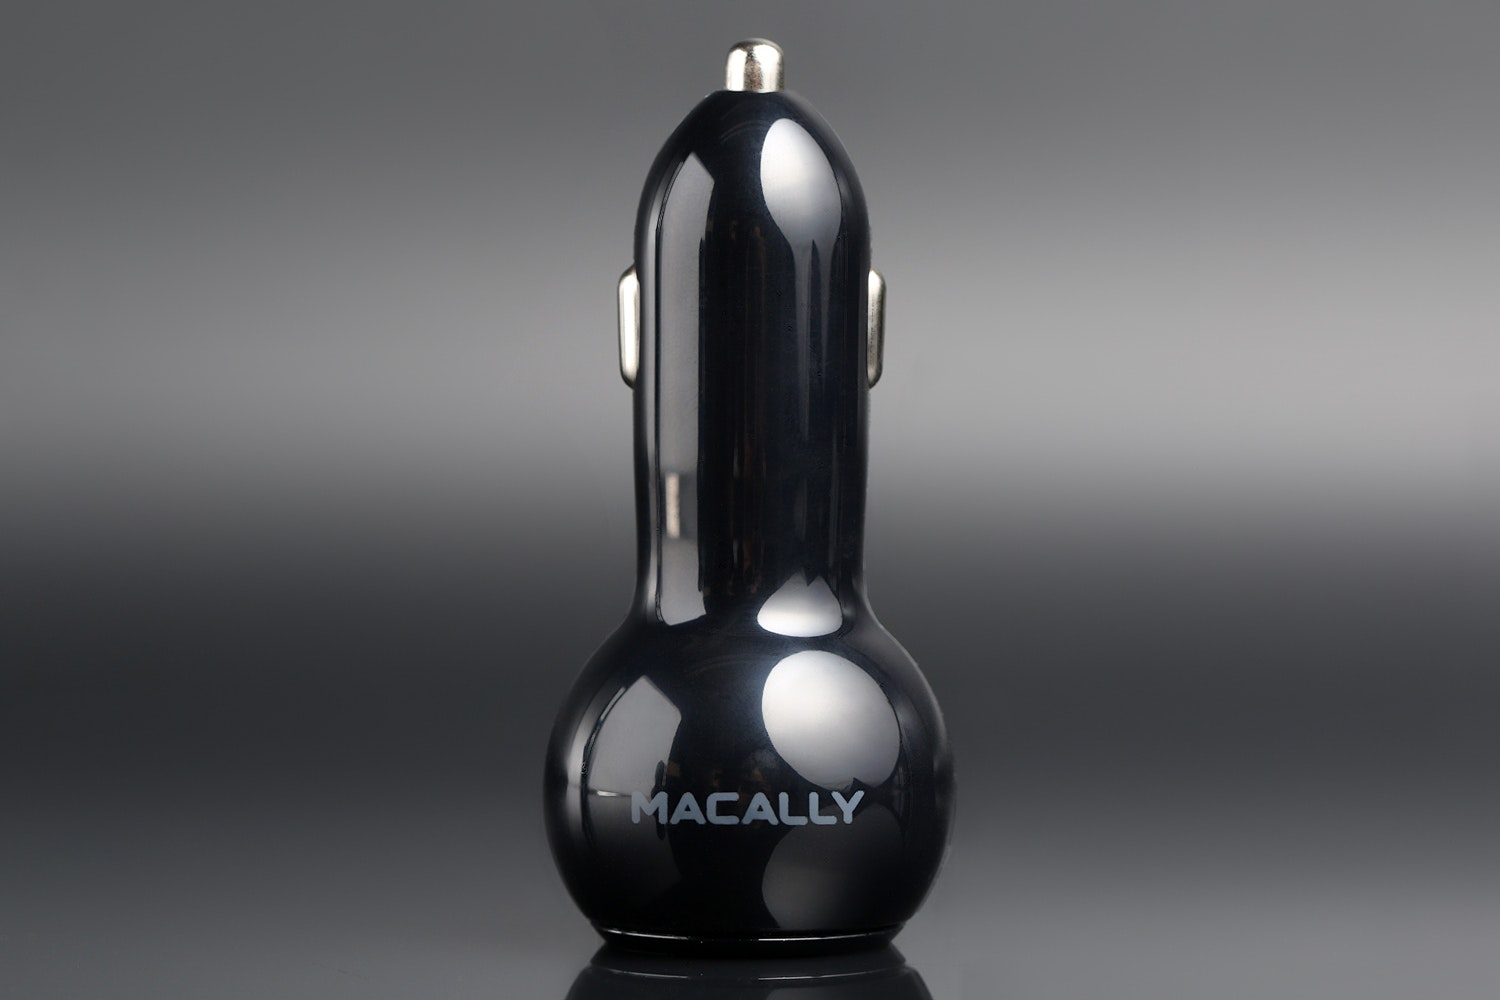 Macally Dual Port USB Car Charger